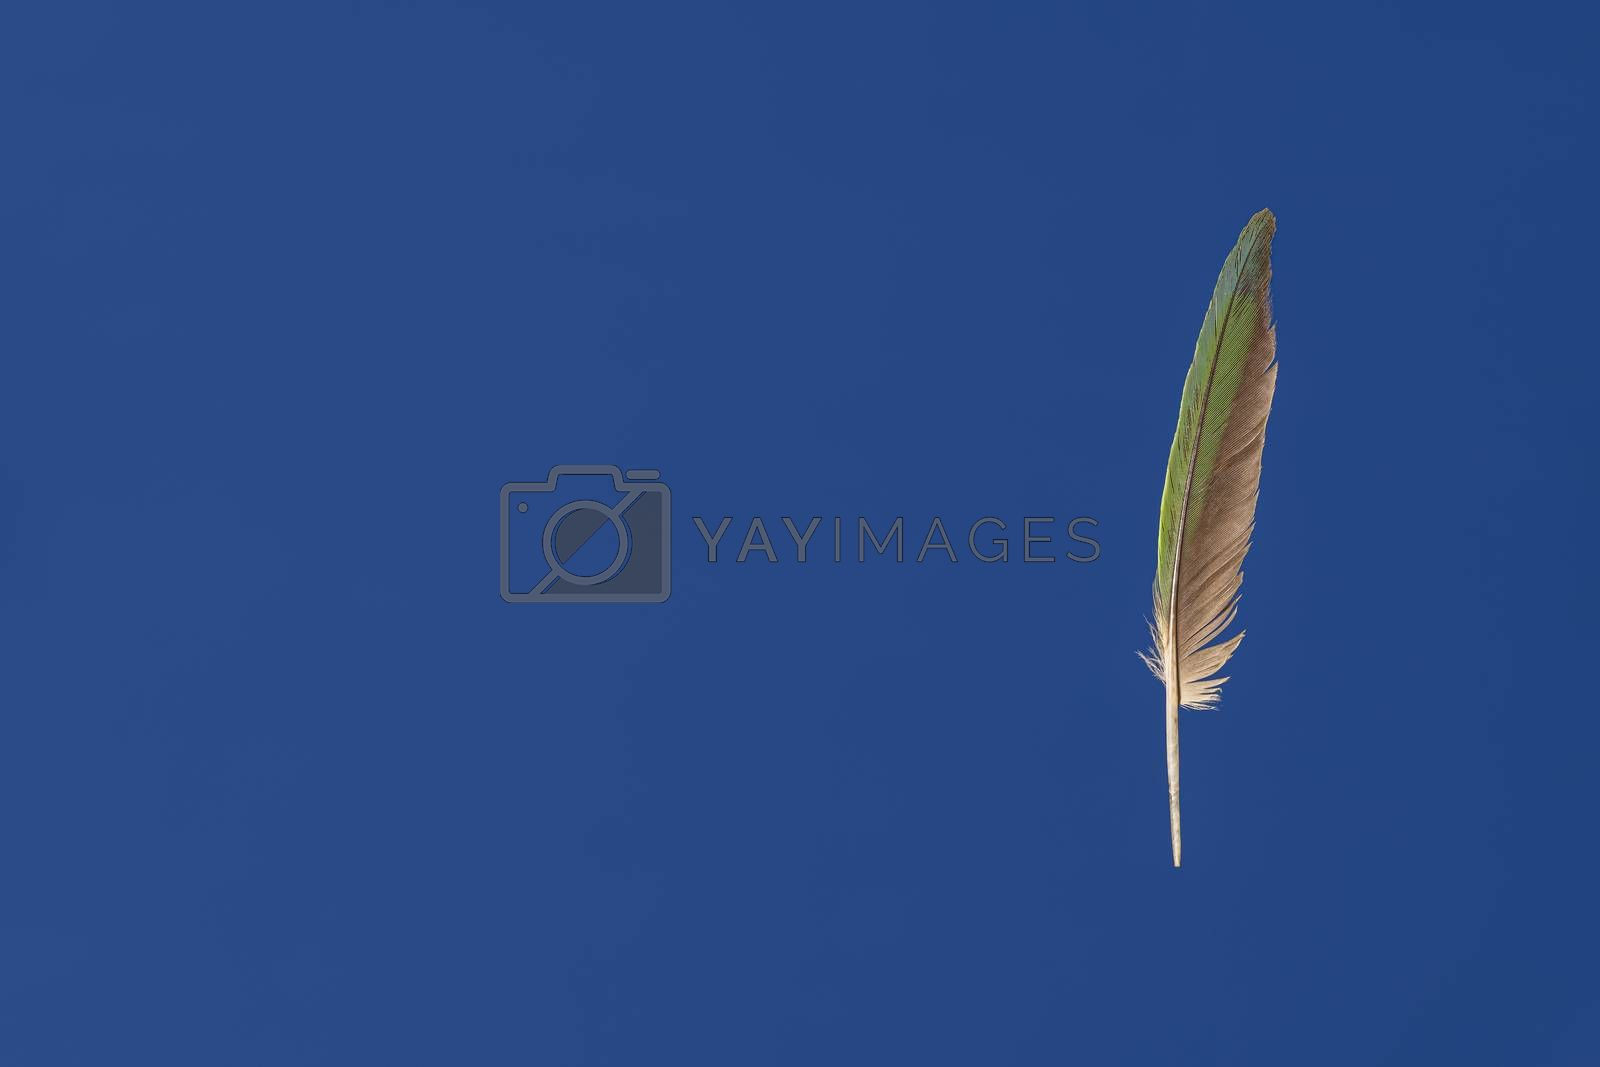 Isolated Green parrot feather against blue background with copy space. Feather looks like suspended in the air